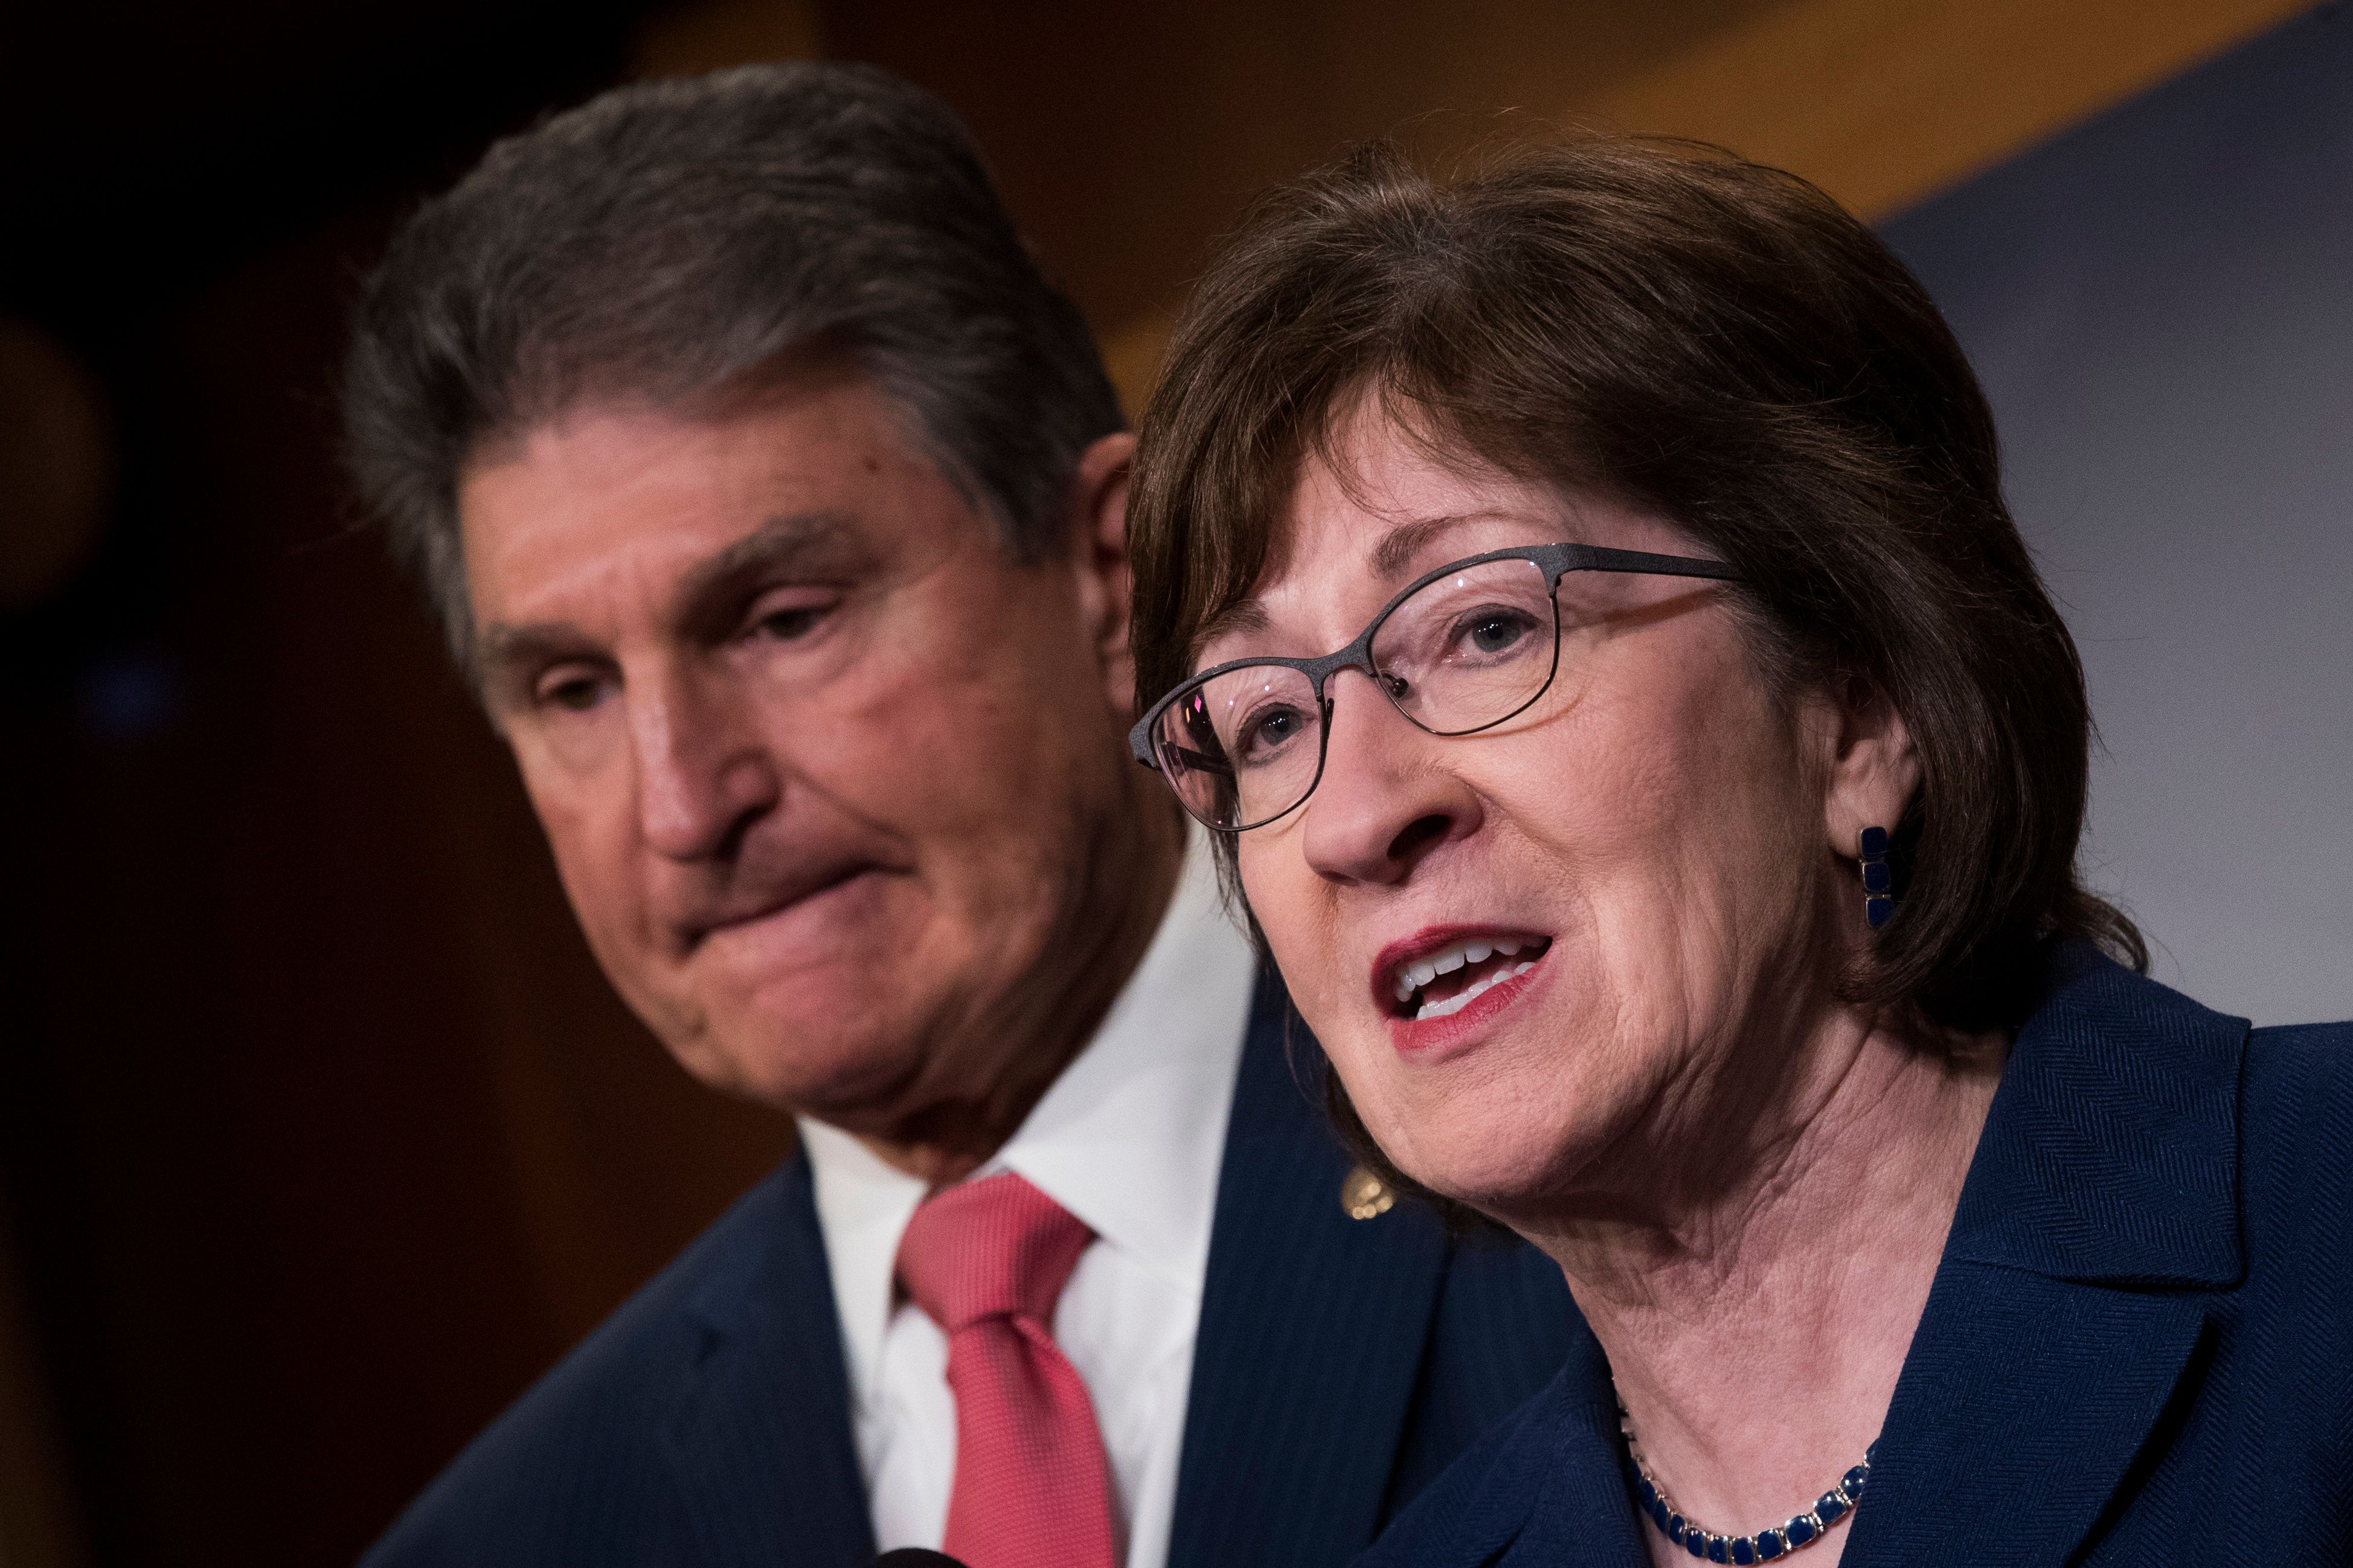 WASHINGTON, DC - JANUARY 22 : (L to R) Sen. Joe Manchin (D-WV) and Sen. Susan Collins (R-ME)  speak during a press conference after the Senate passed a procedural vote for a continuing resolution to fund the federal government, Capitol Hill, January 22, 2018 in Washington, DC. Lawmakers are continuing to seek a deal to end the government shutdown, now in day three. (Photo by Drew Angerer/Getty Images)